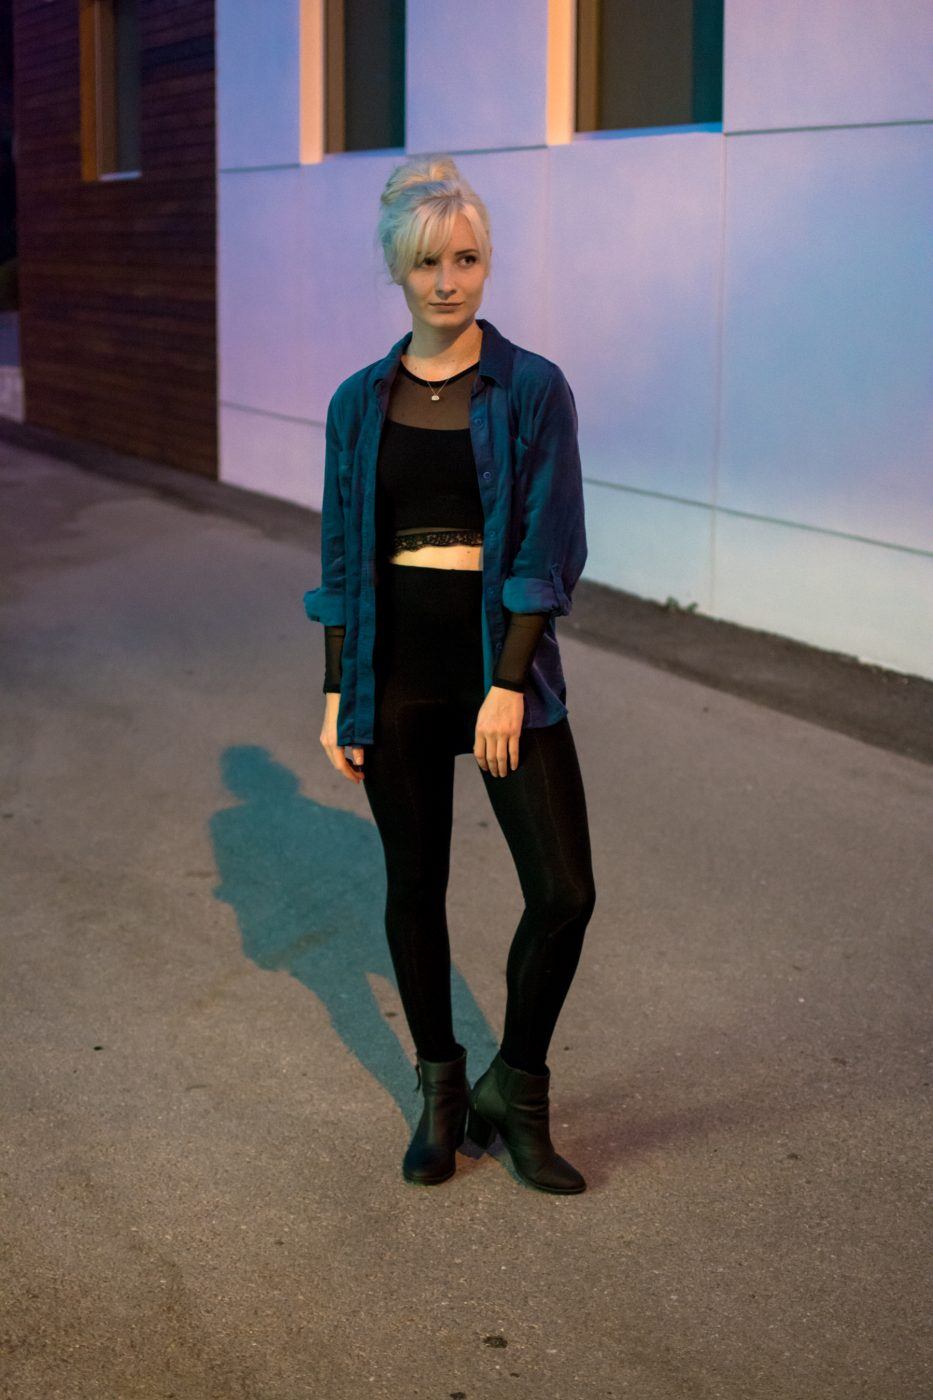 Blue velvet and black outfit by Jenny Bess at Sweet Teal